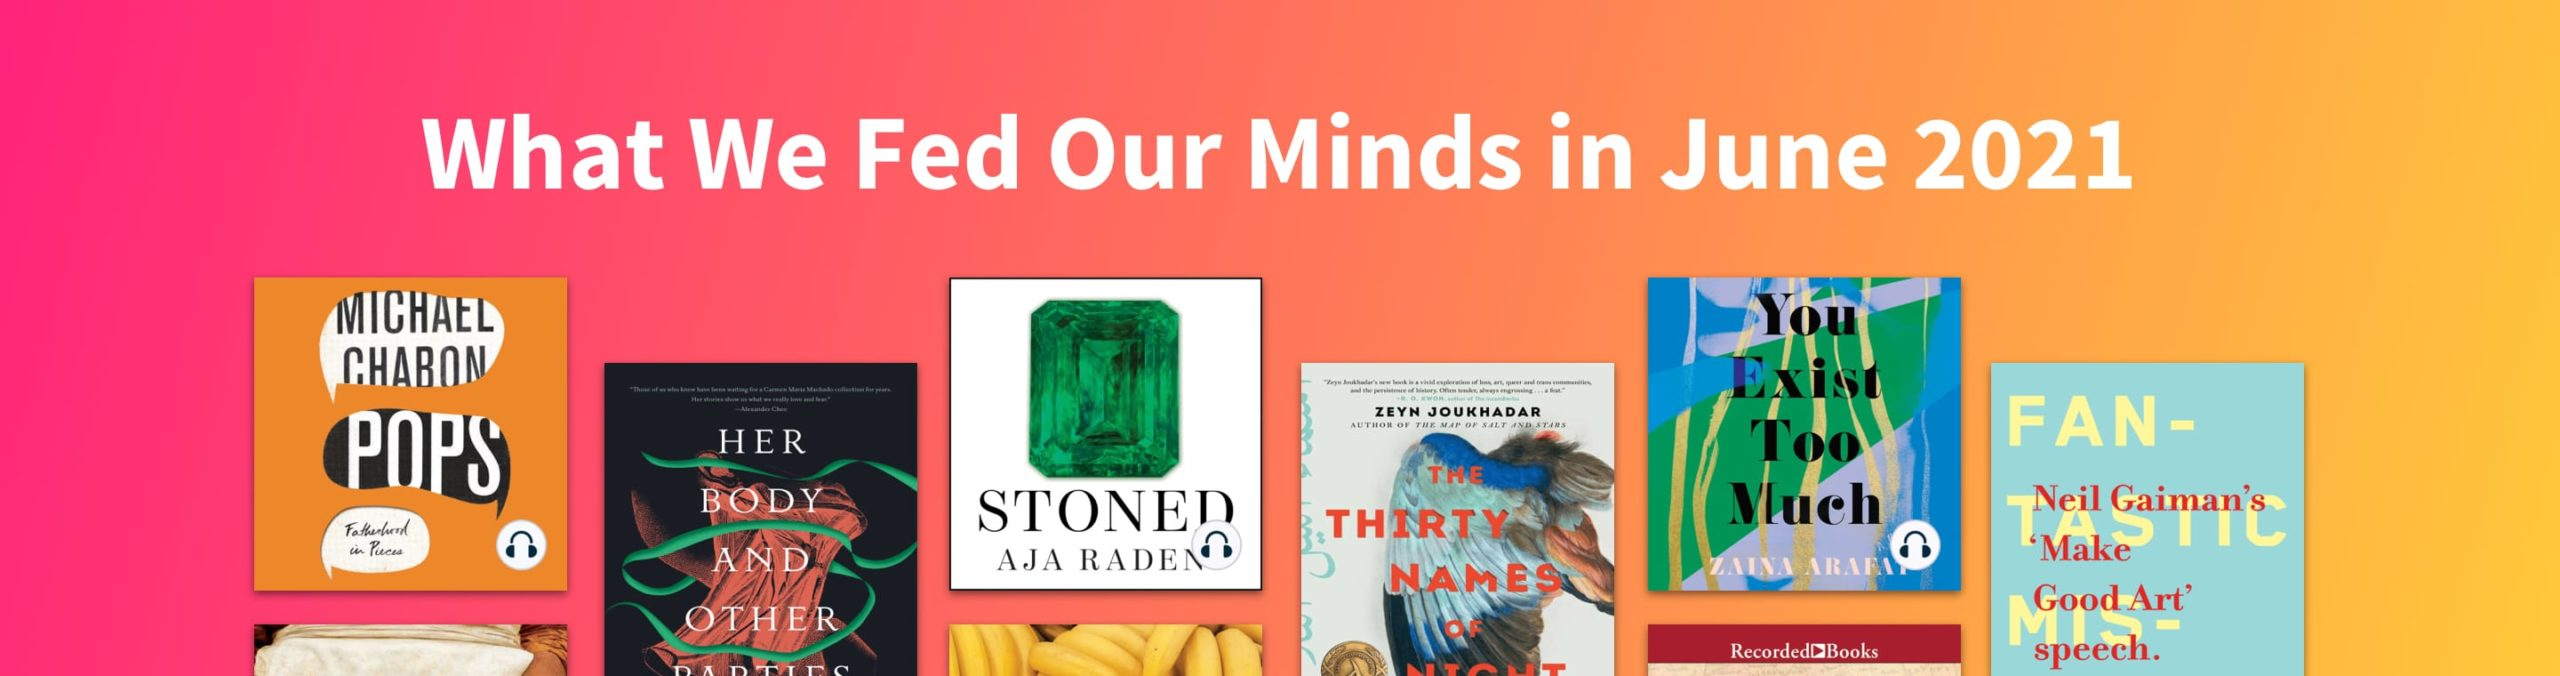 What we fed our minds this June